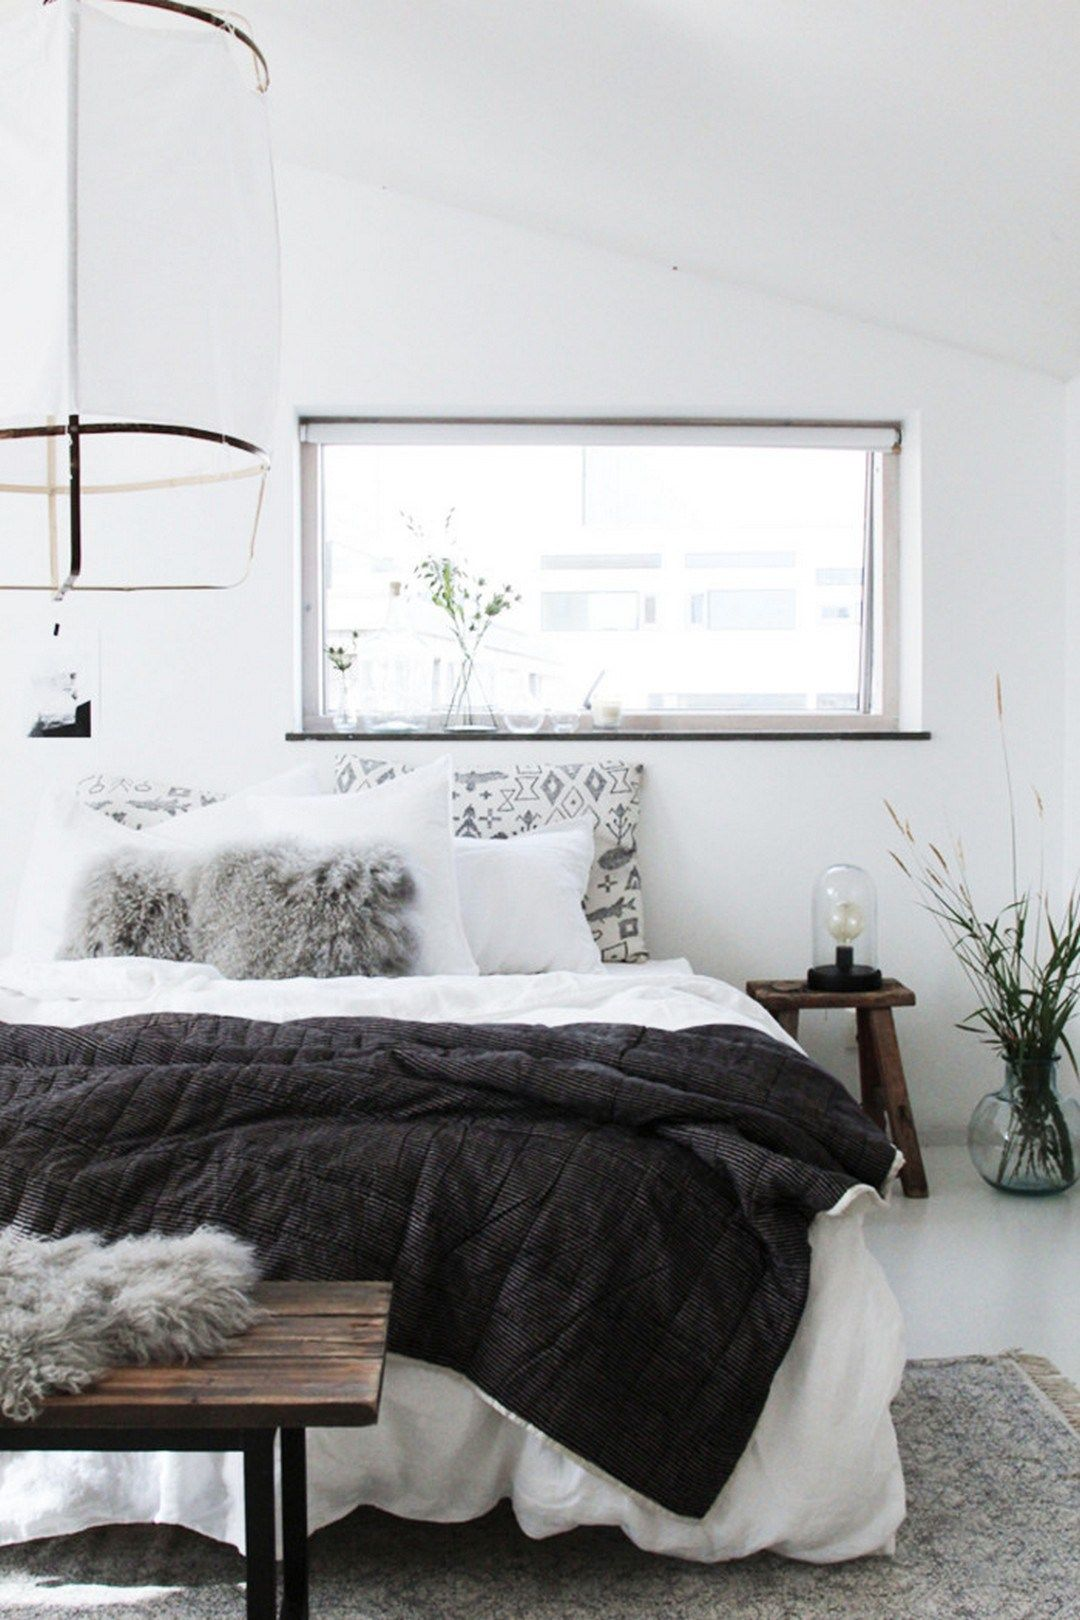 99 Scandinavian Design Bedroom Trends In 2017 (35